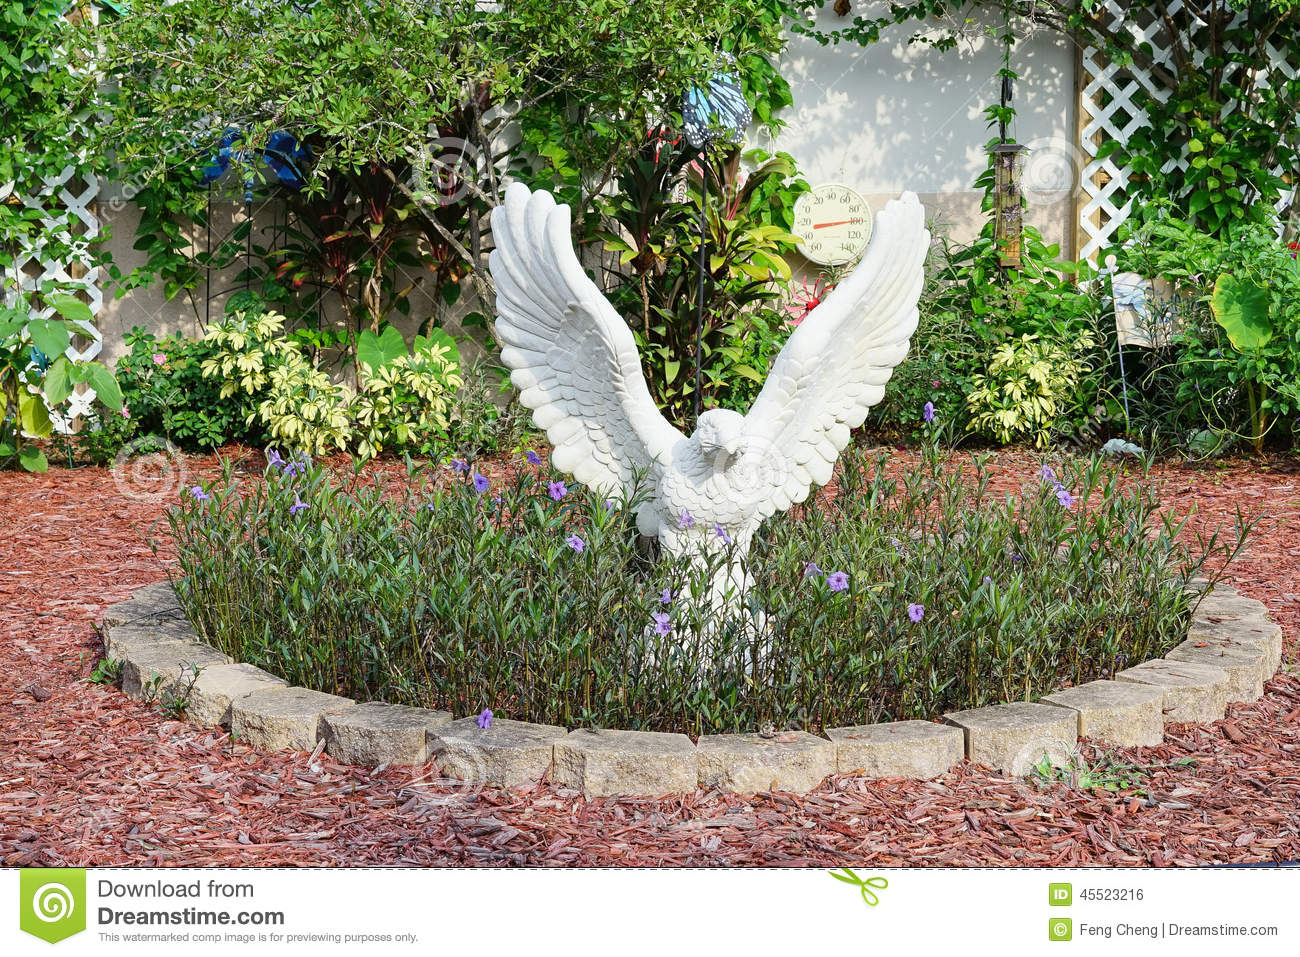 Attrayant A Beautiful School Garden And A White Statue Of Eagle